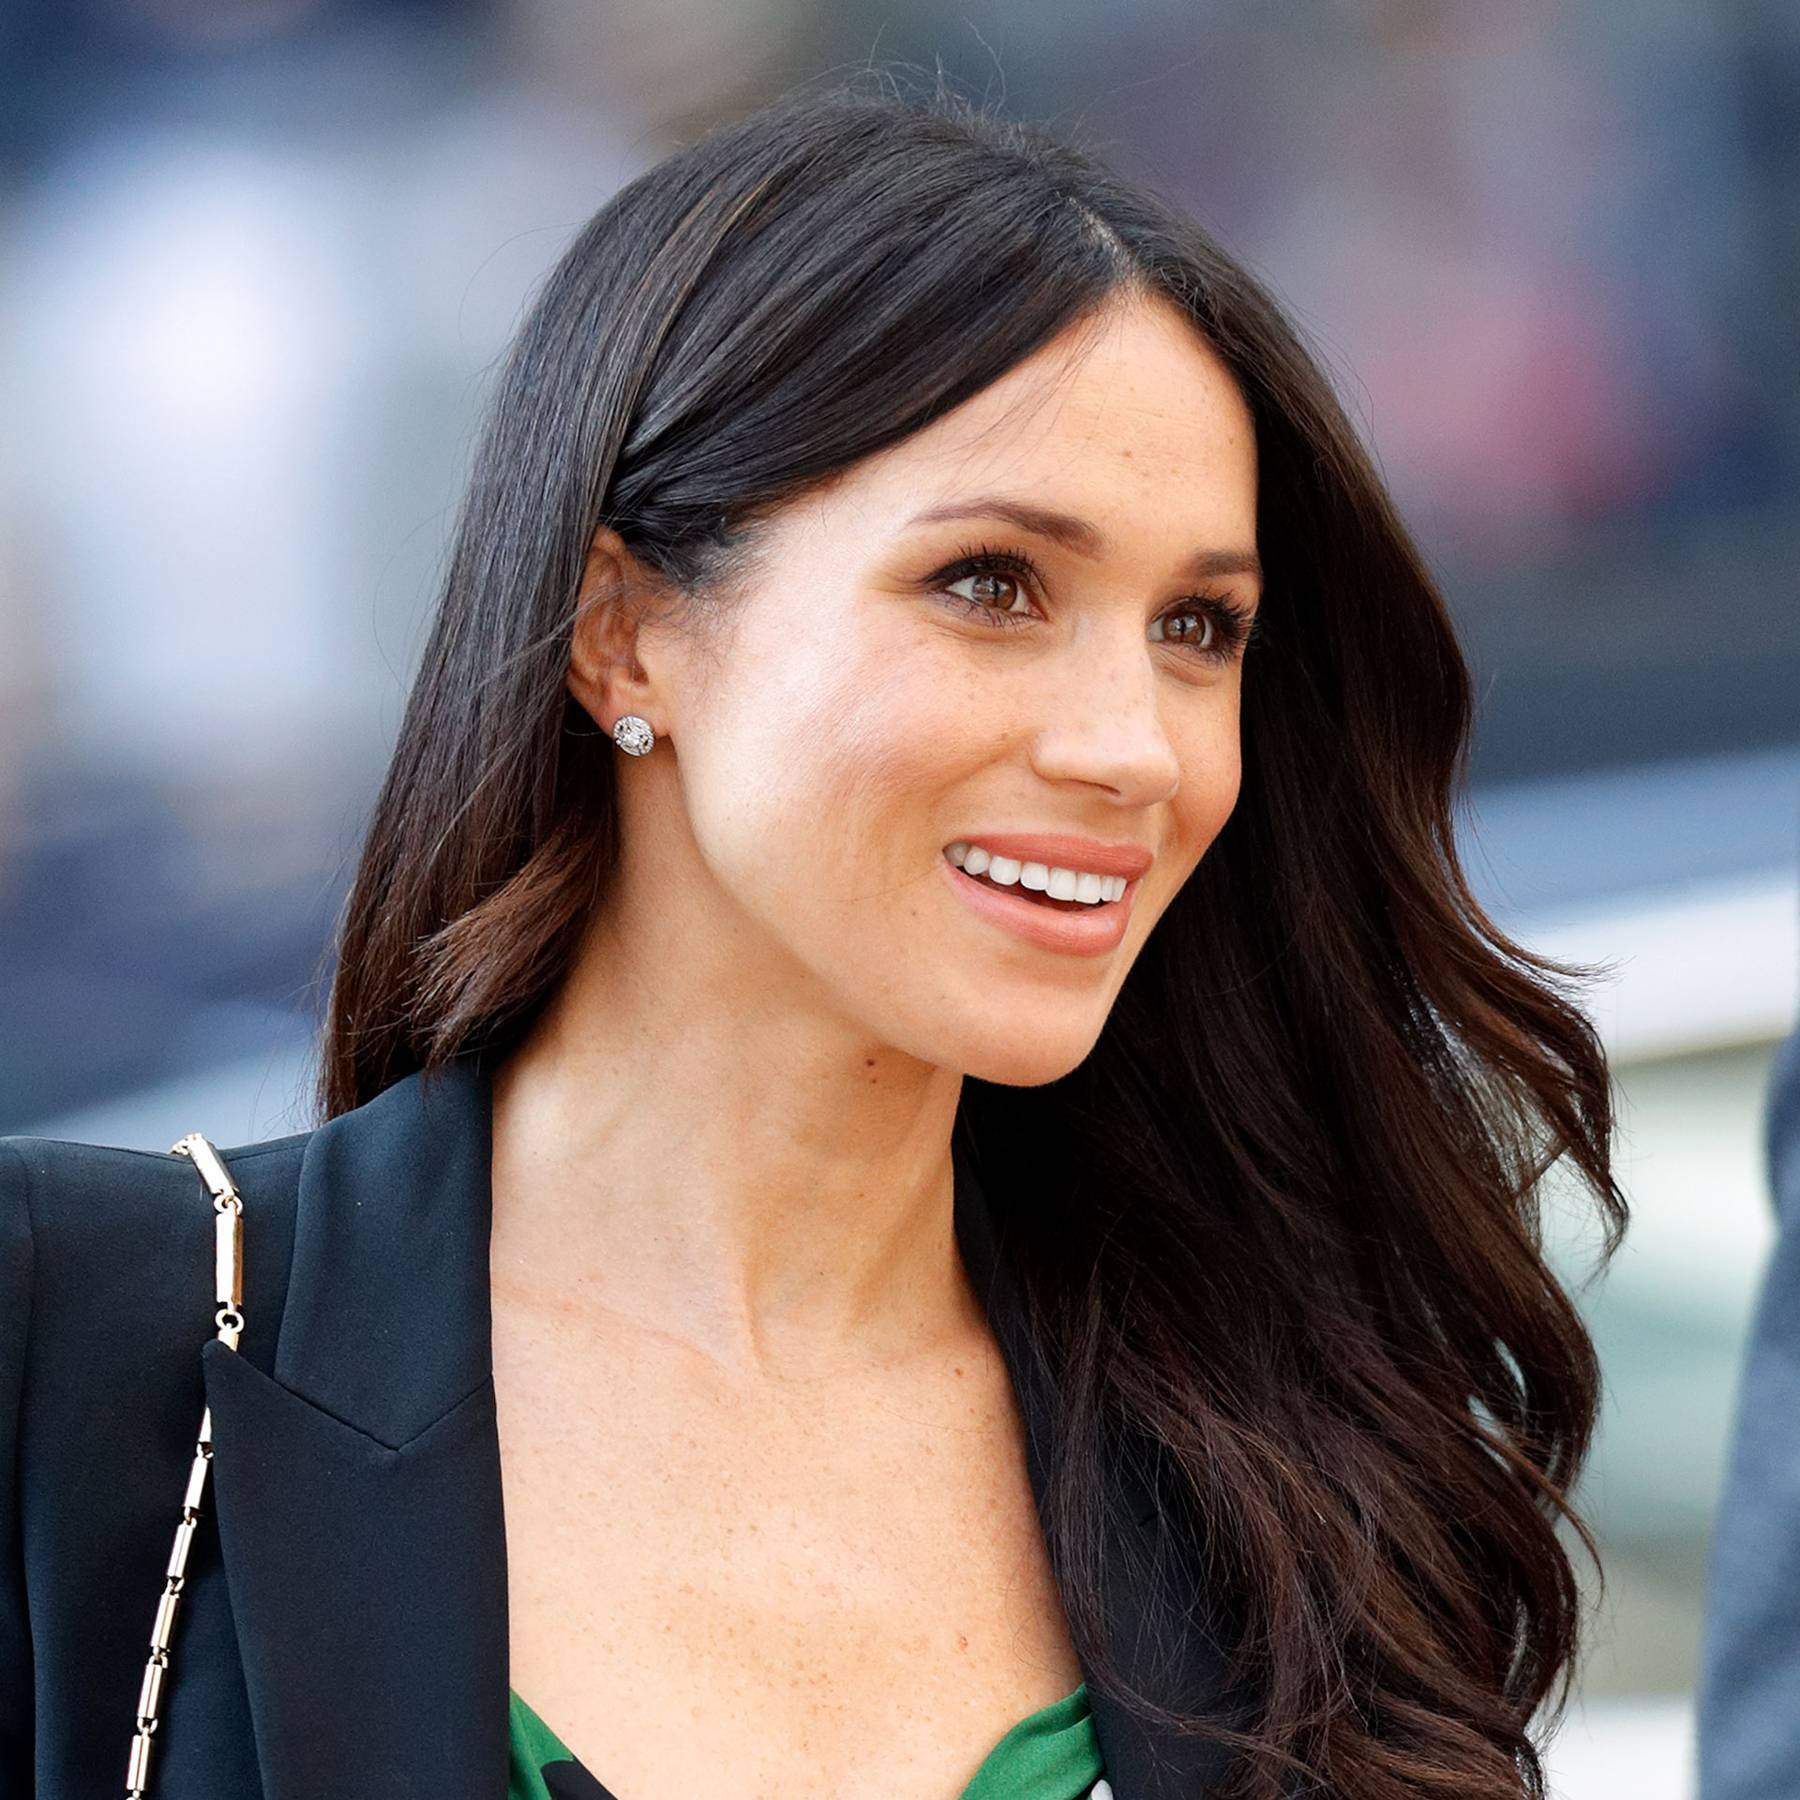 harry and meghan didn t talk to omid scobie carolyn durand tatler omid scobie carolyn durand